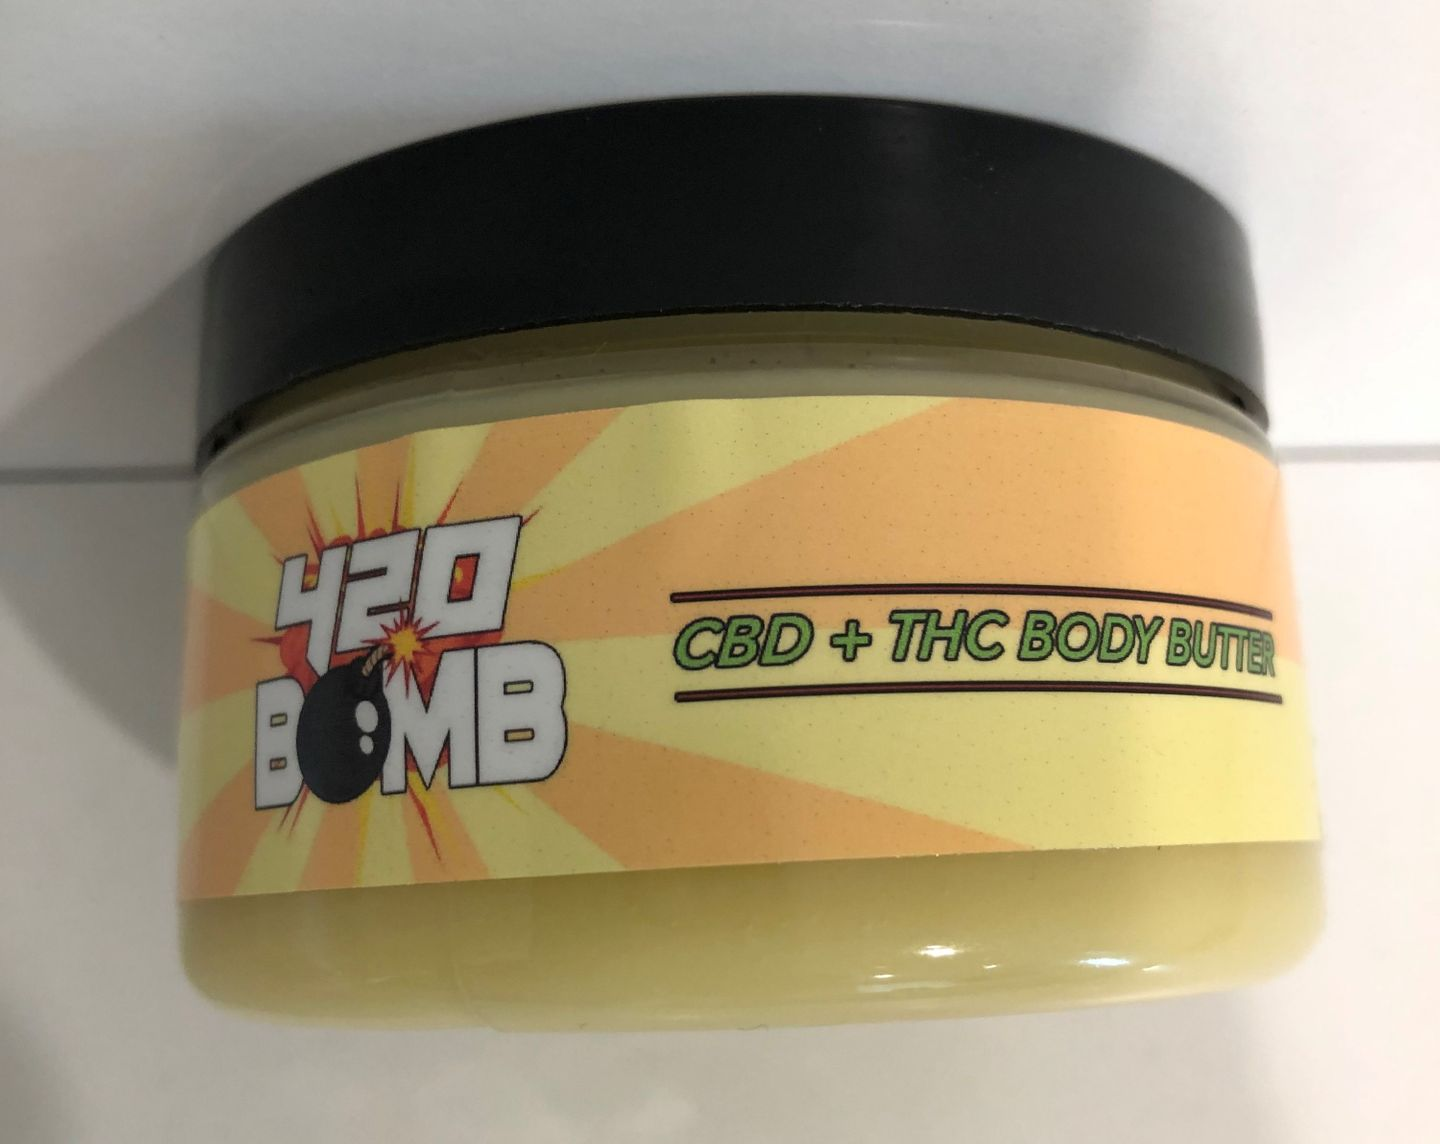 feature image 420 Bomb CBD+THC Body Butter